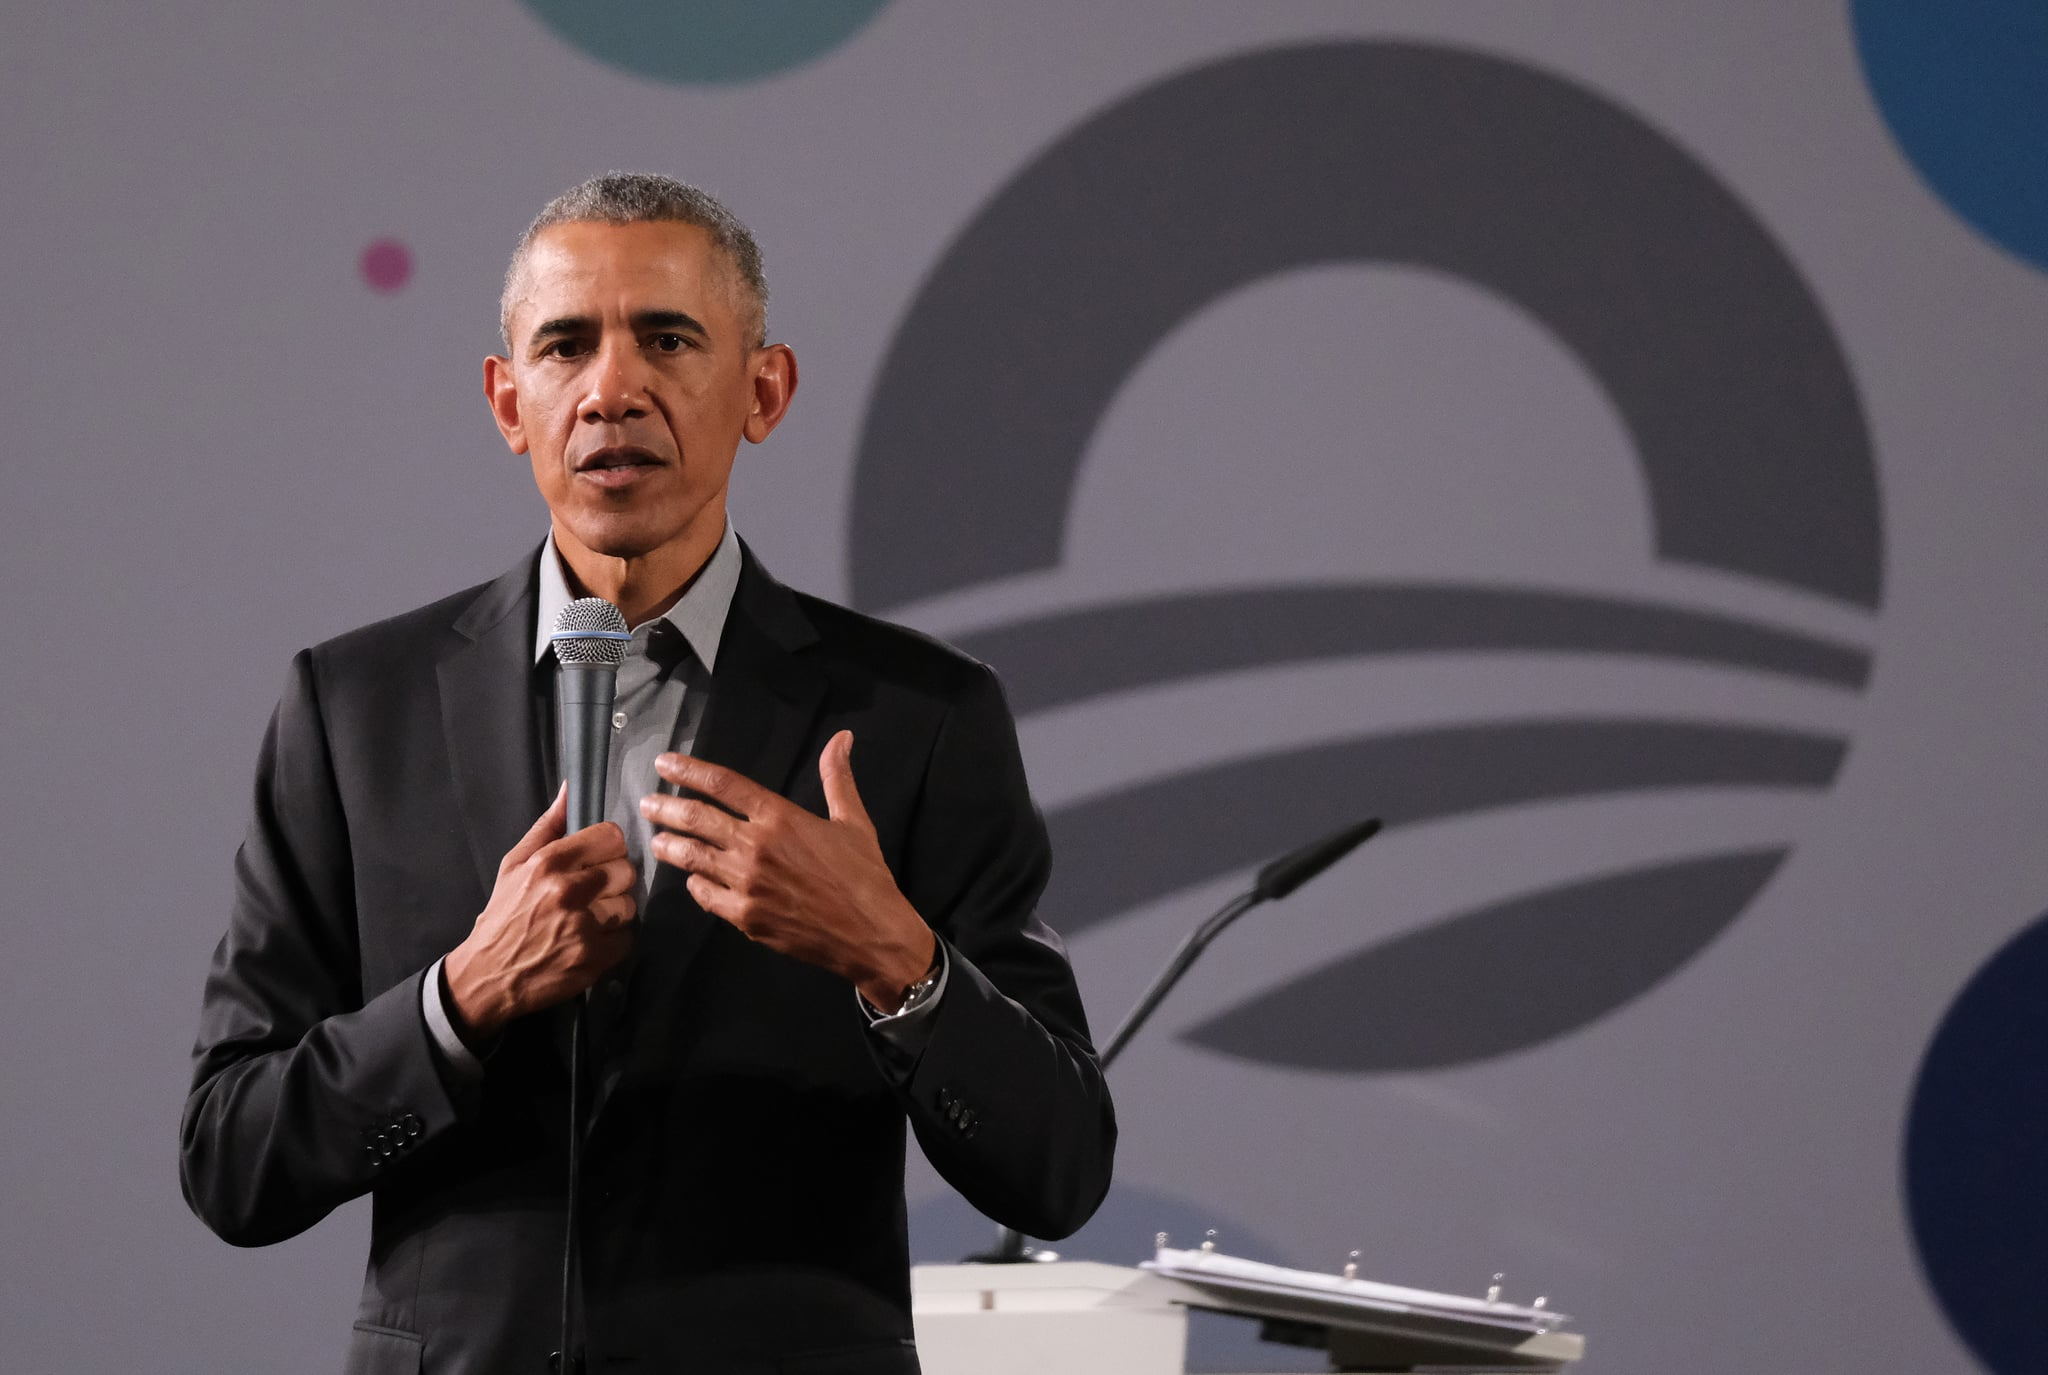 BERLIN, GERMANY - APRIL 06: Former U.S. President Barack Obama speaks to young leaders from across Europe in a Town Hall-styled session on April 06, 2019 in Berlin, Germany. Obama spoke to several hundred young people from European government, civil society and the private sector about the nitty gritty of achieving positive change in government and society.  (Photo by Sean Gallup/Getty Images)